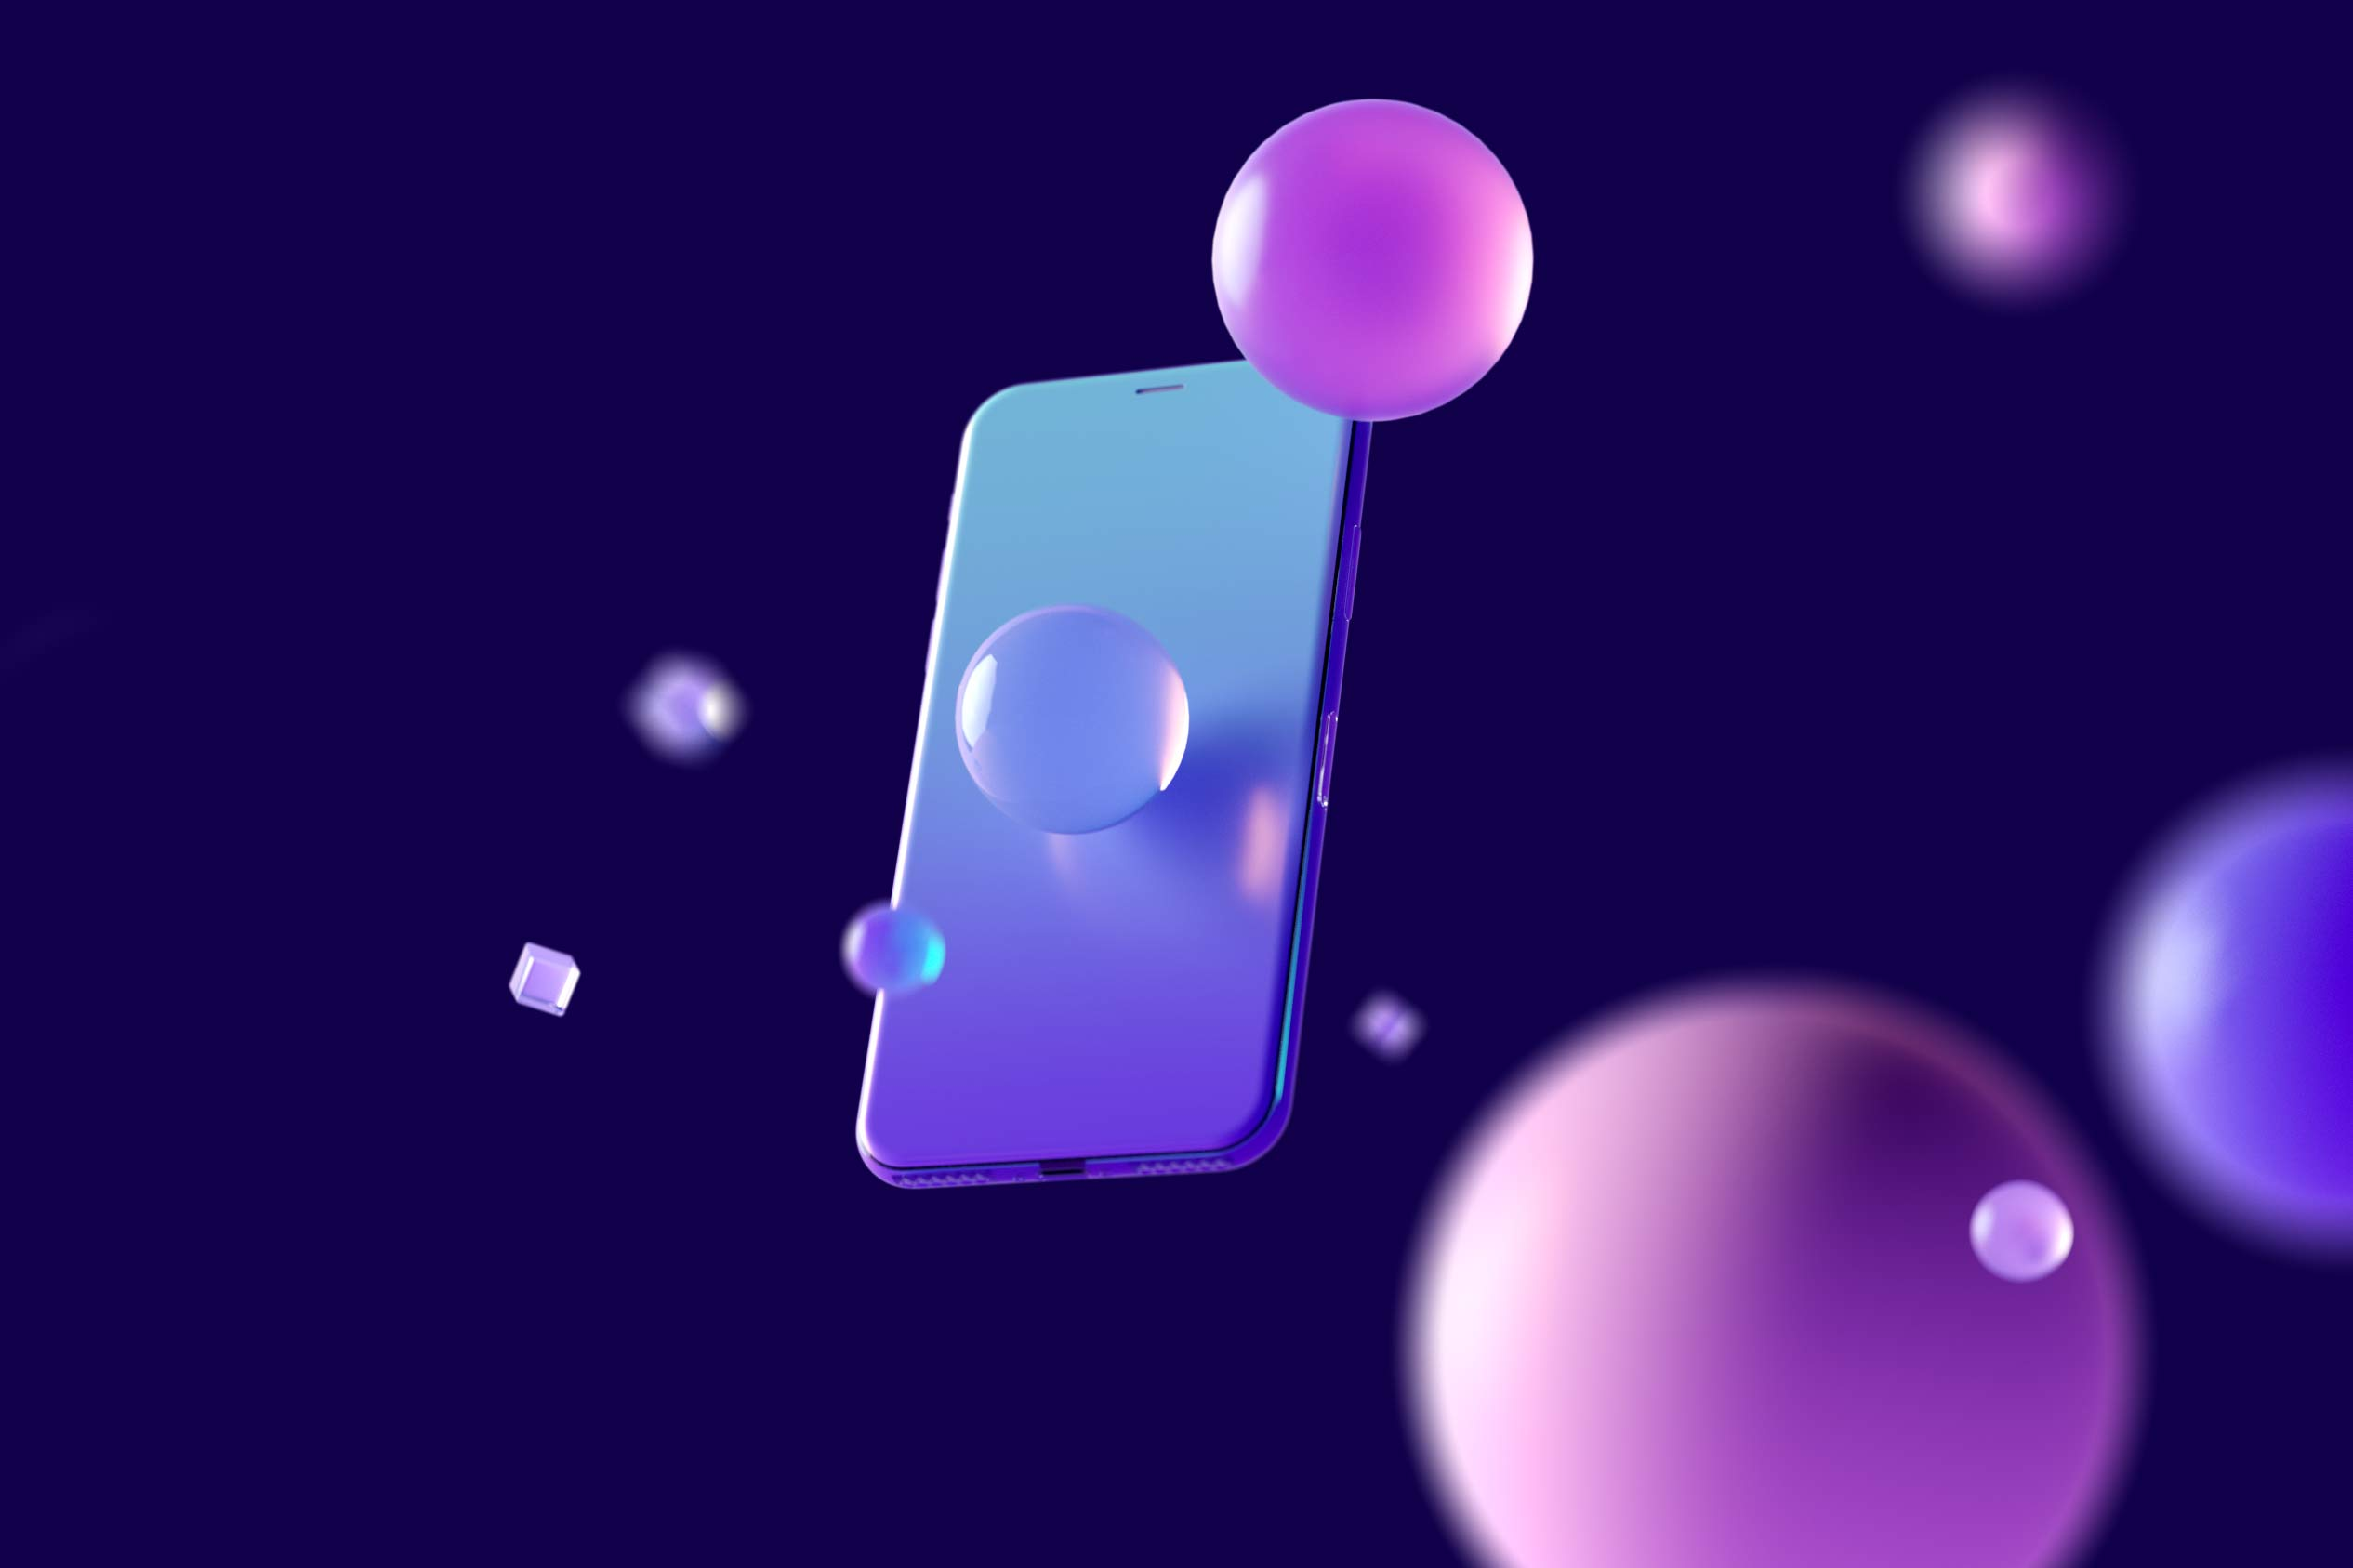 a-floating-cell-phone-with-bubbles